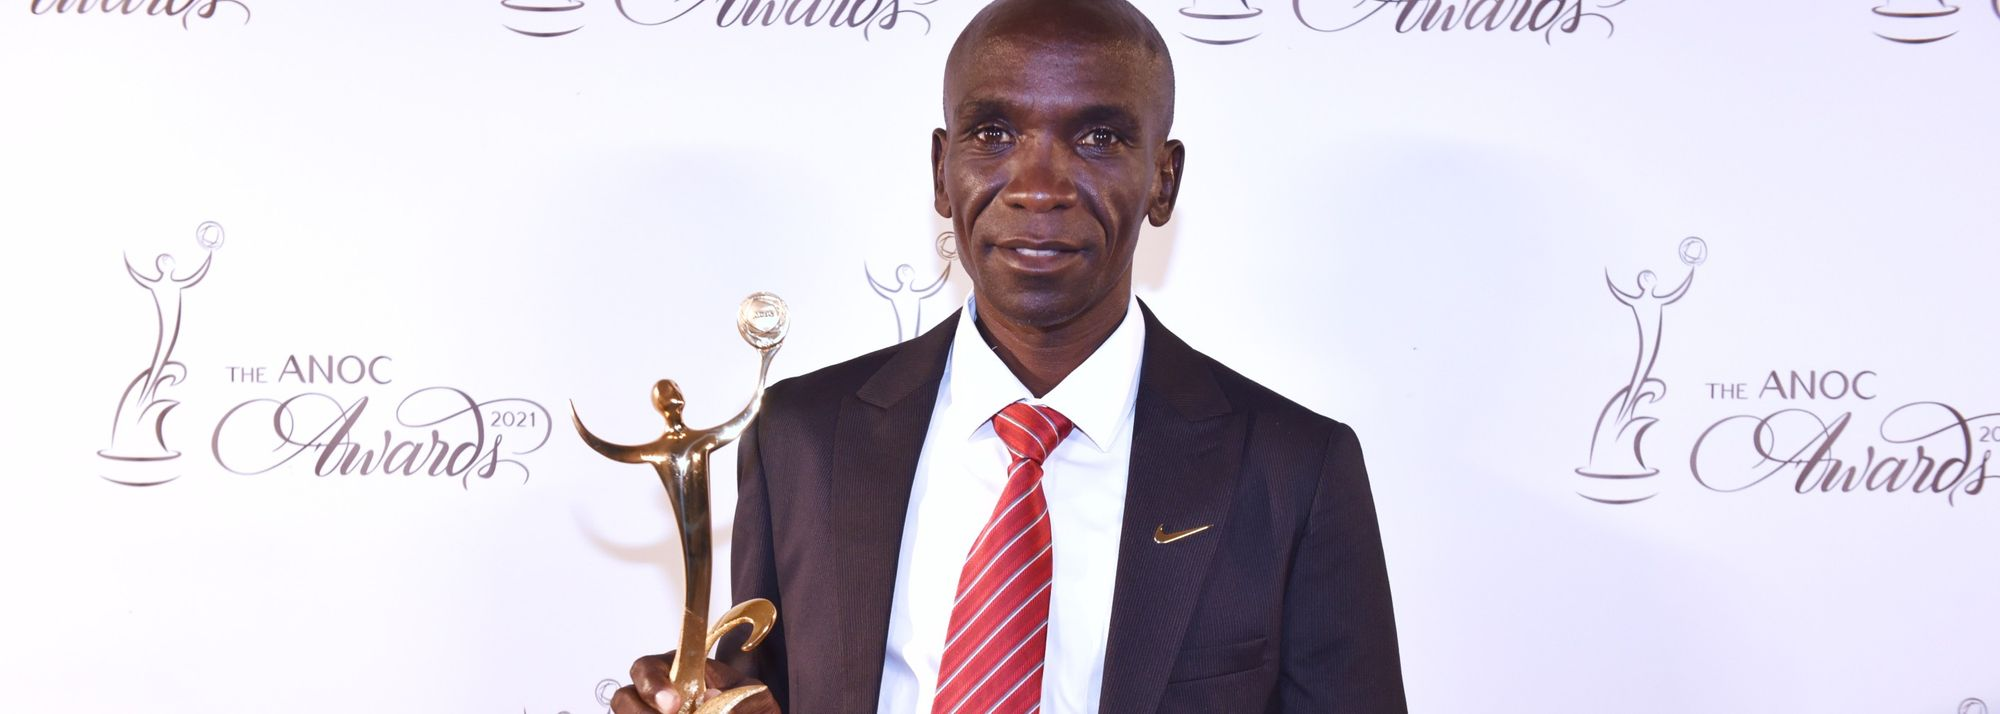 Eliud Kipchoge has been named the best male athlete of the Tokyo 2020 Olympic Games at the Association of National Olympic Committees Awards.